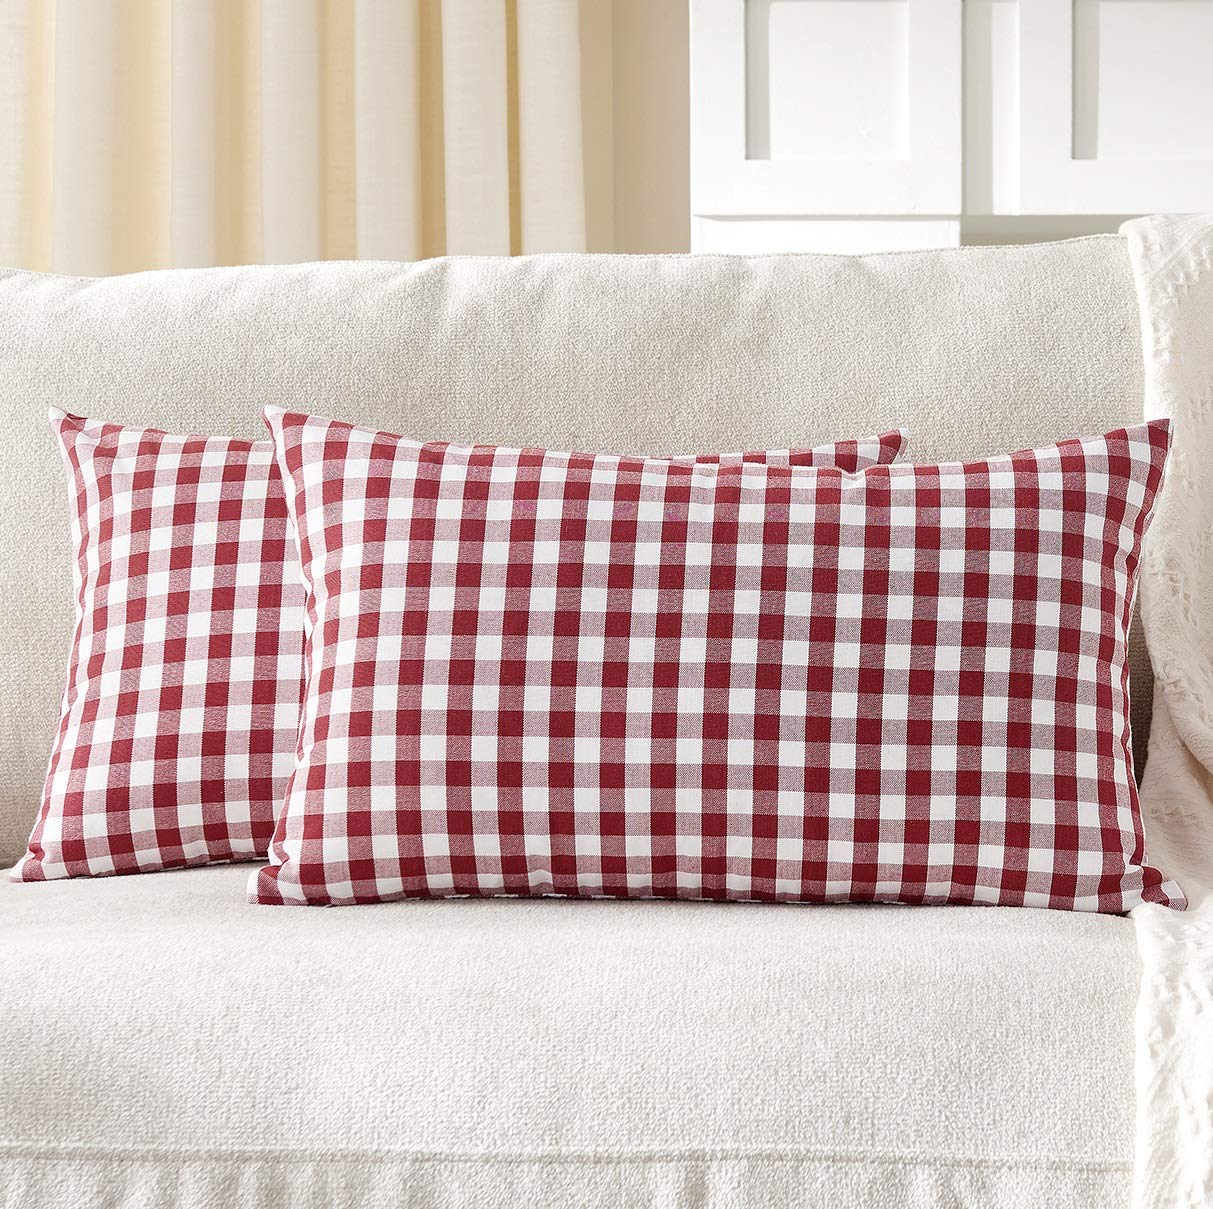 Foindtower Pack of 2 Lumbar Farmhouse Decorative Gingham Throw Pillow Covers Classic Check Plaid Cushion Cover Rustic Christmas Home Decor for Couch Bedroom Chair 12 x 20 Inch Red and White